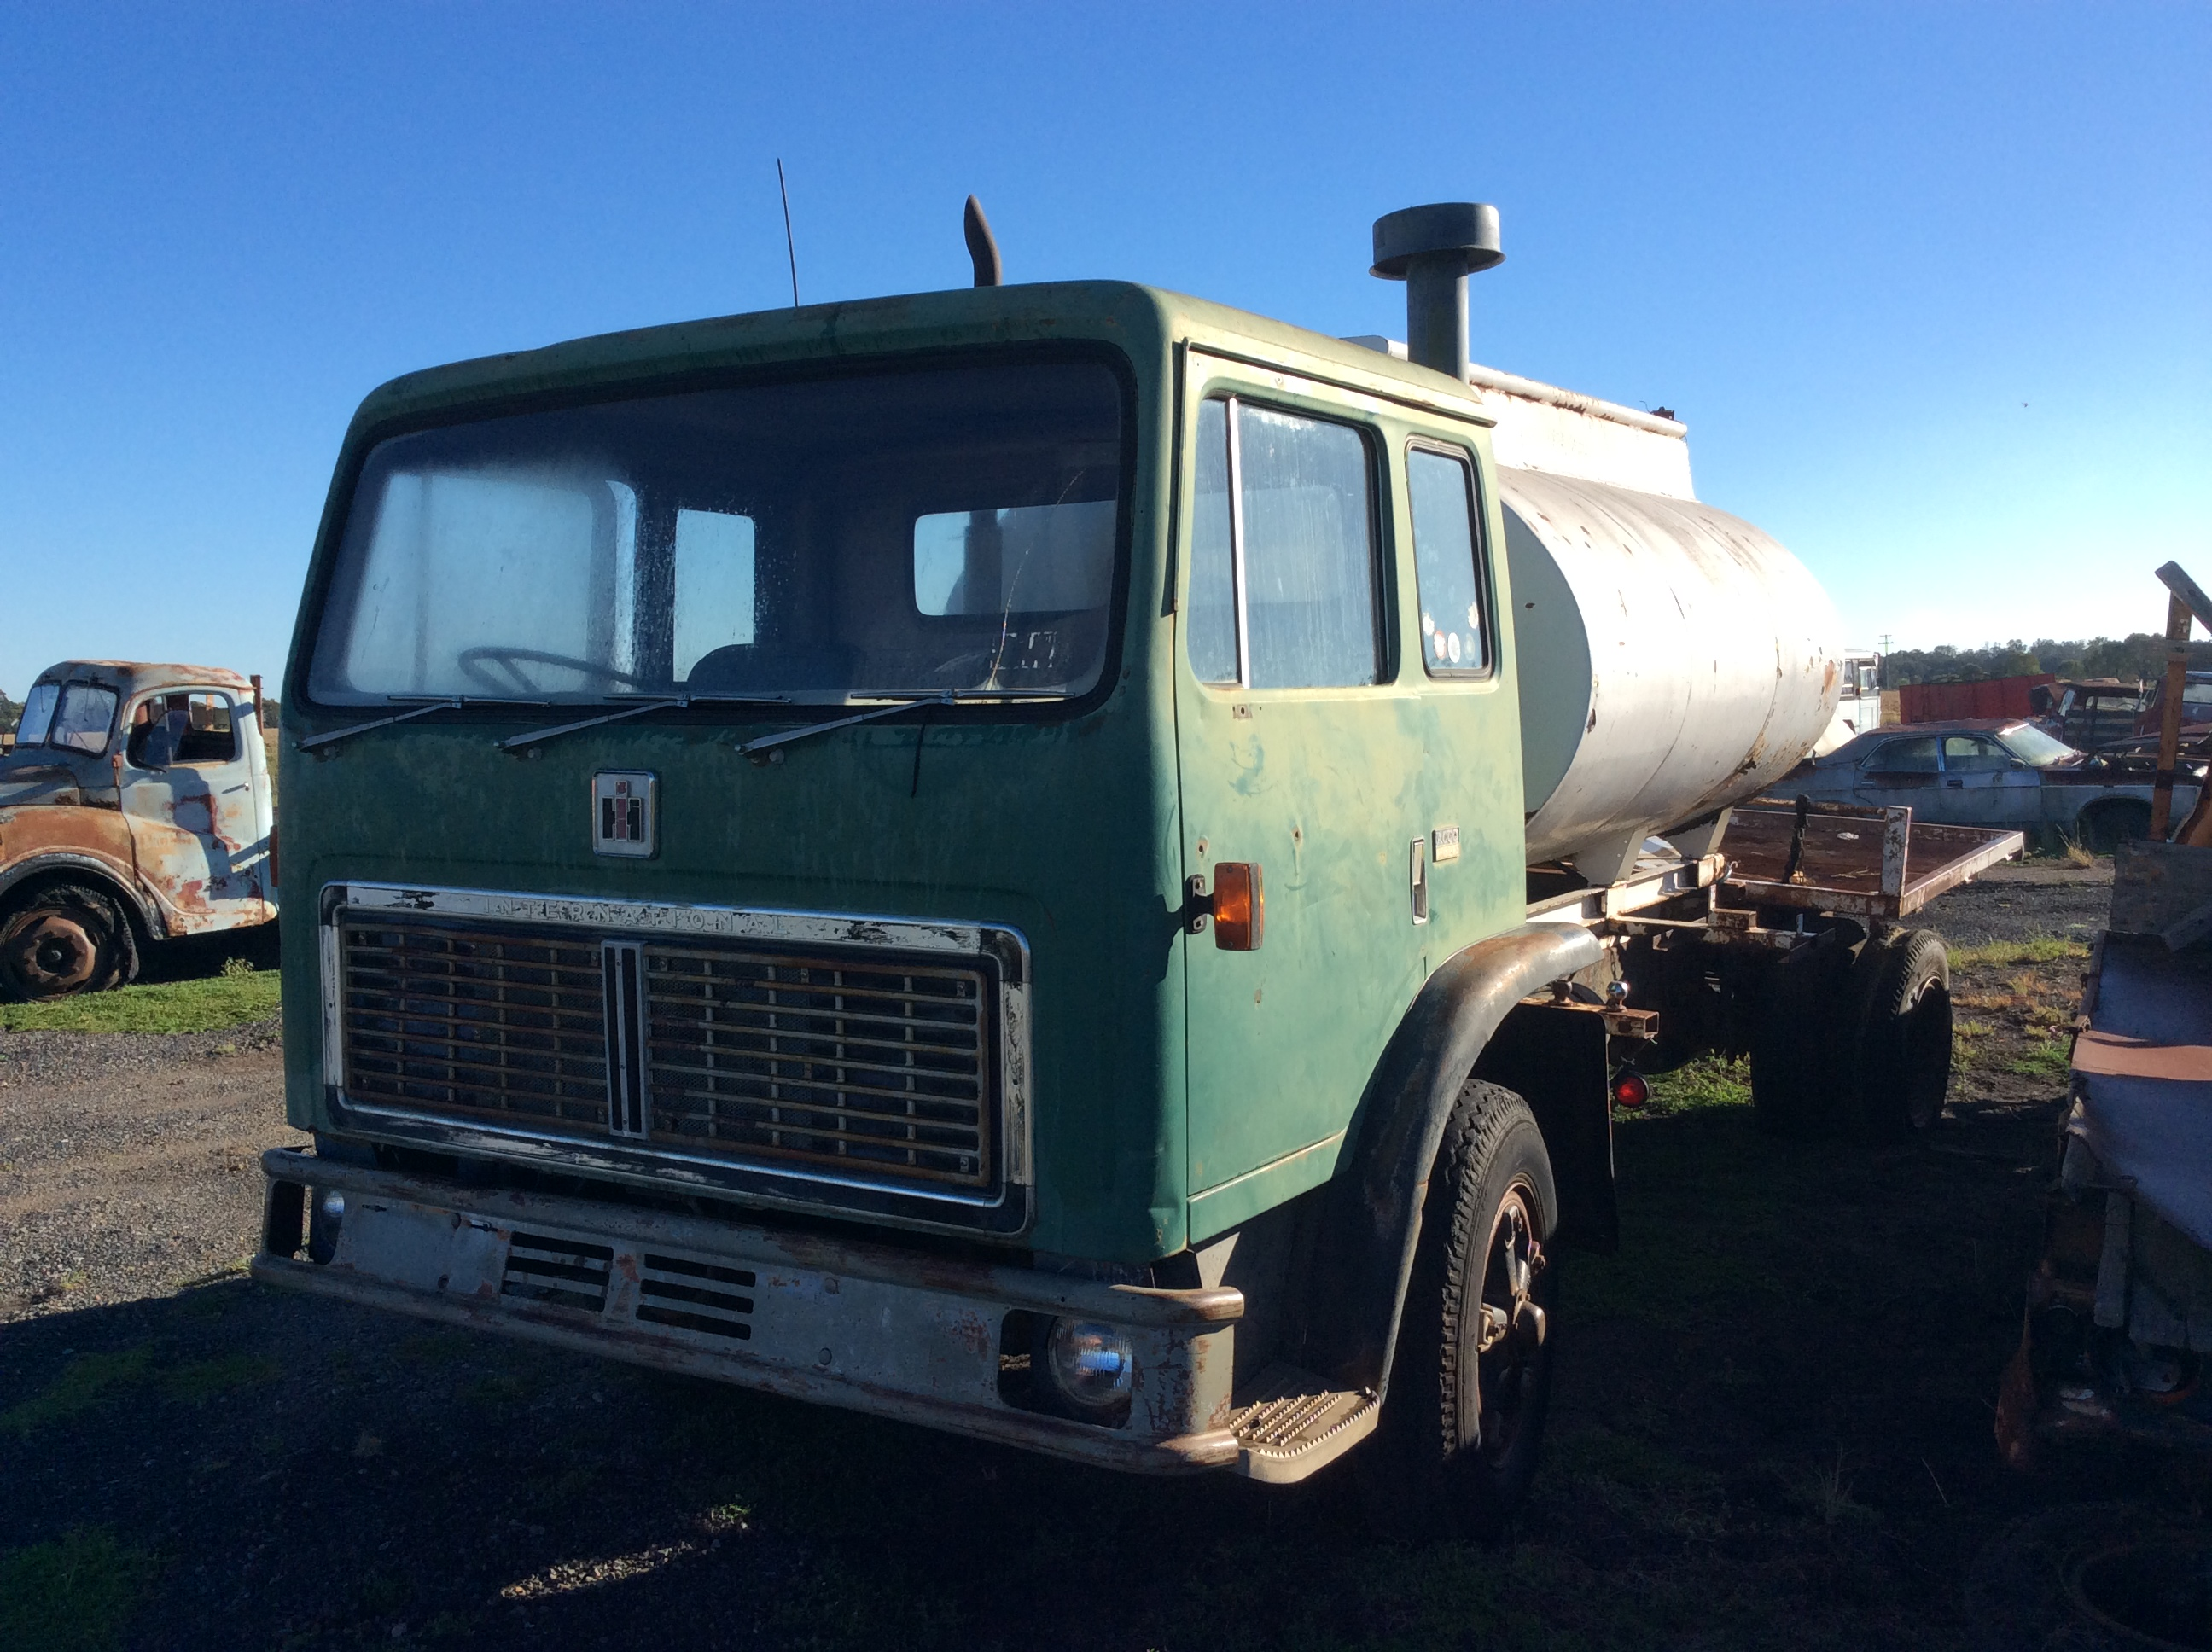 International Acco 1830B - Truck & Tractor Parts & Wrecking